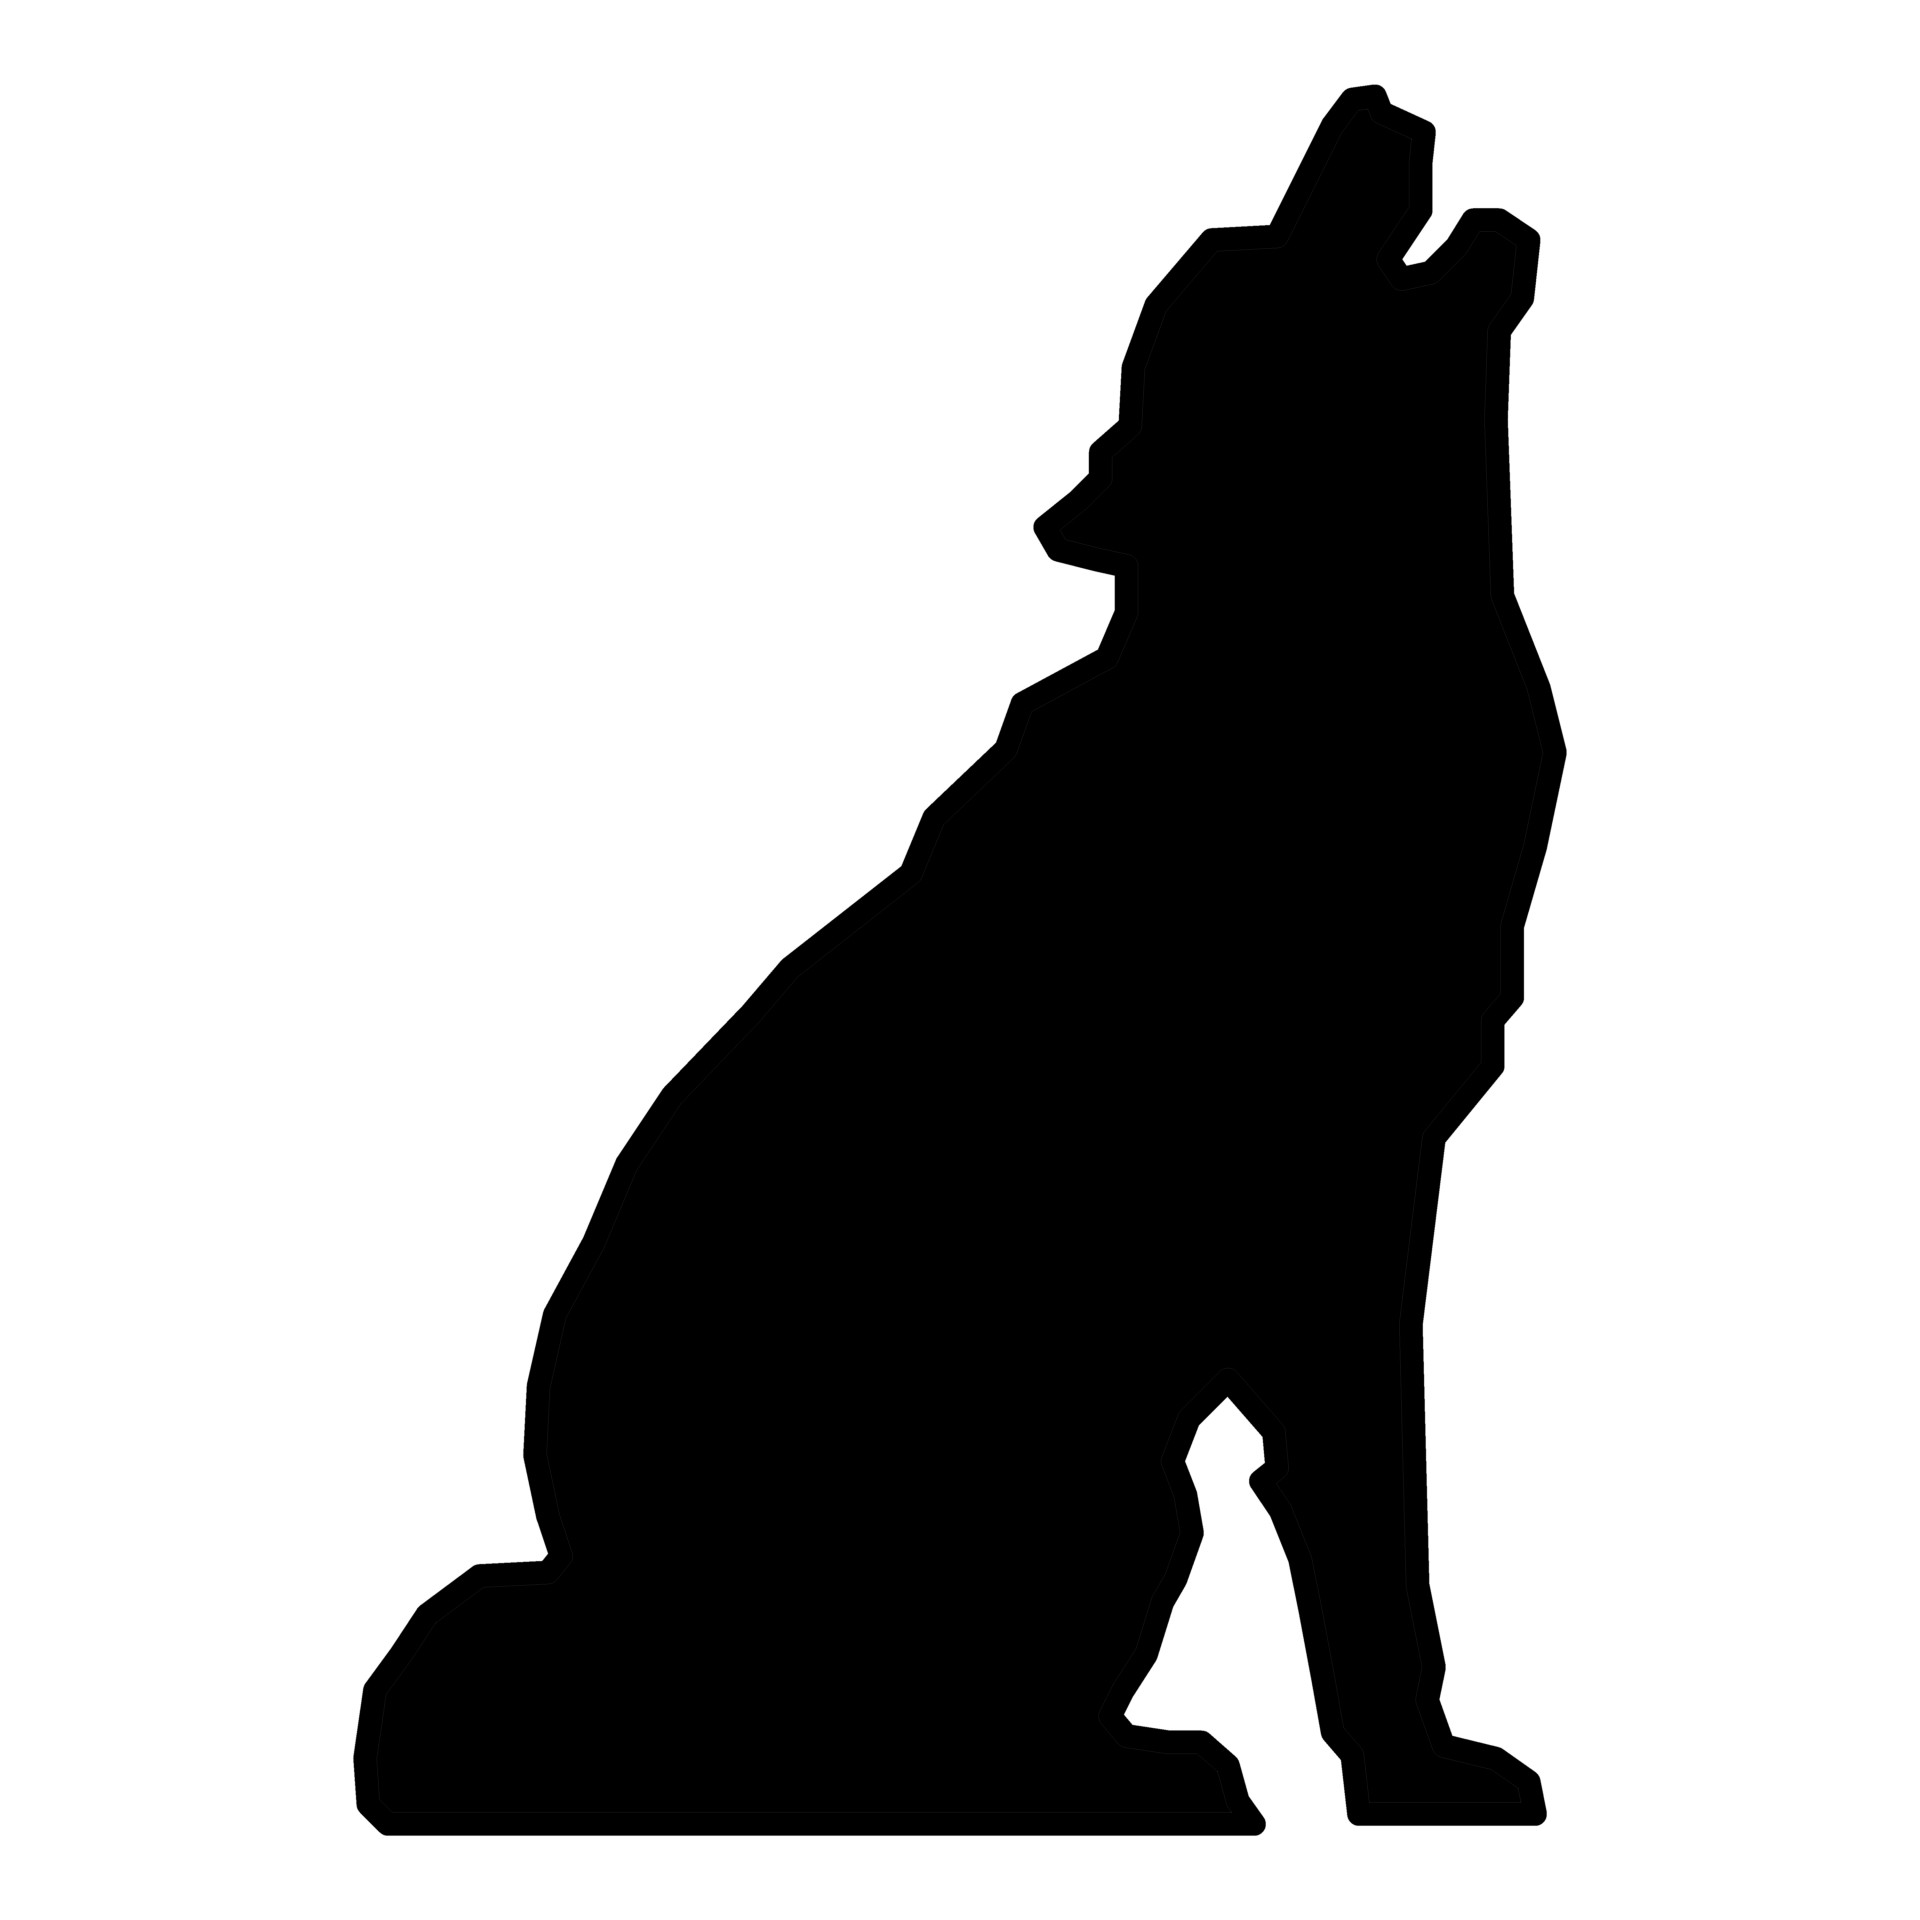 Bear clipart wolf. Silhouette at getdrawings com